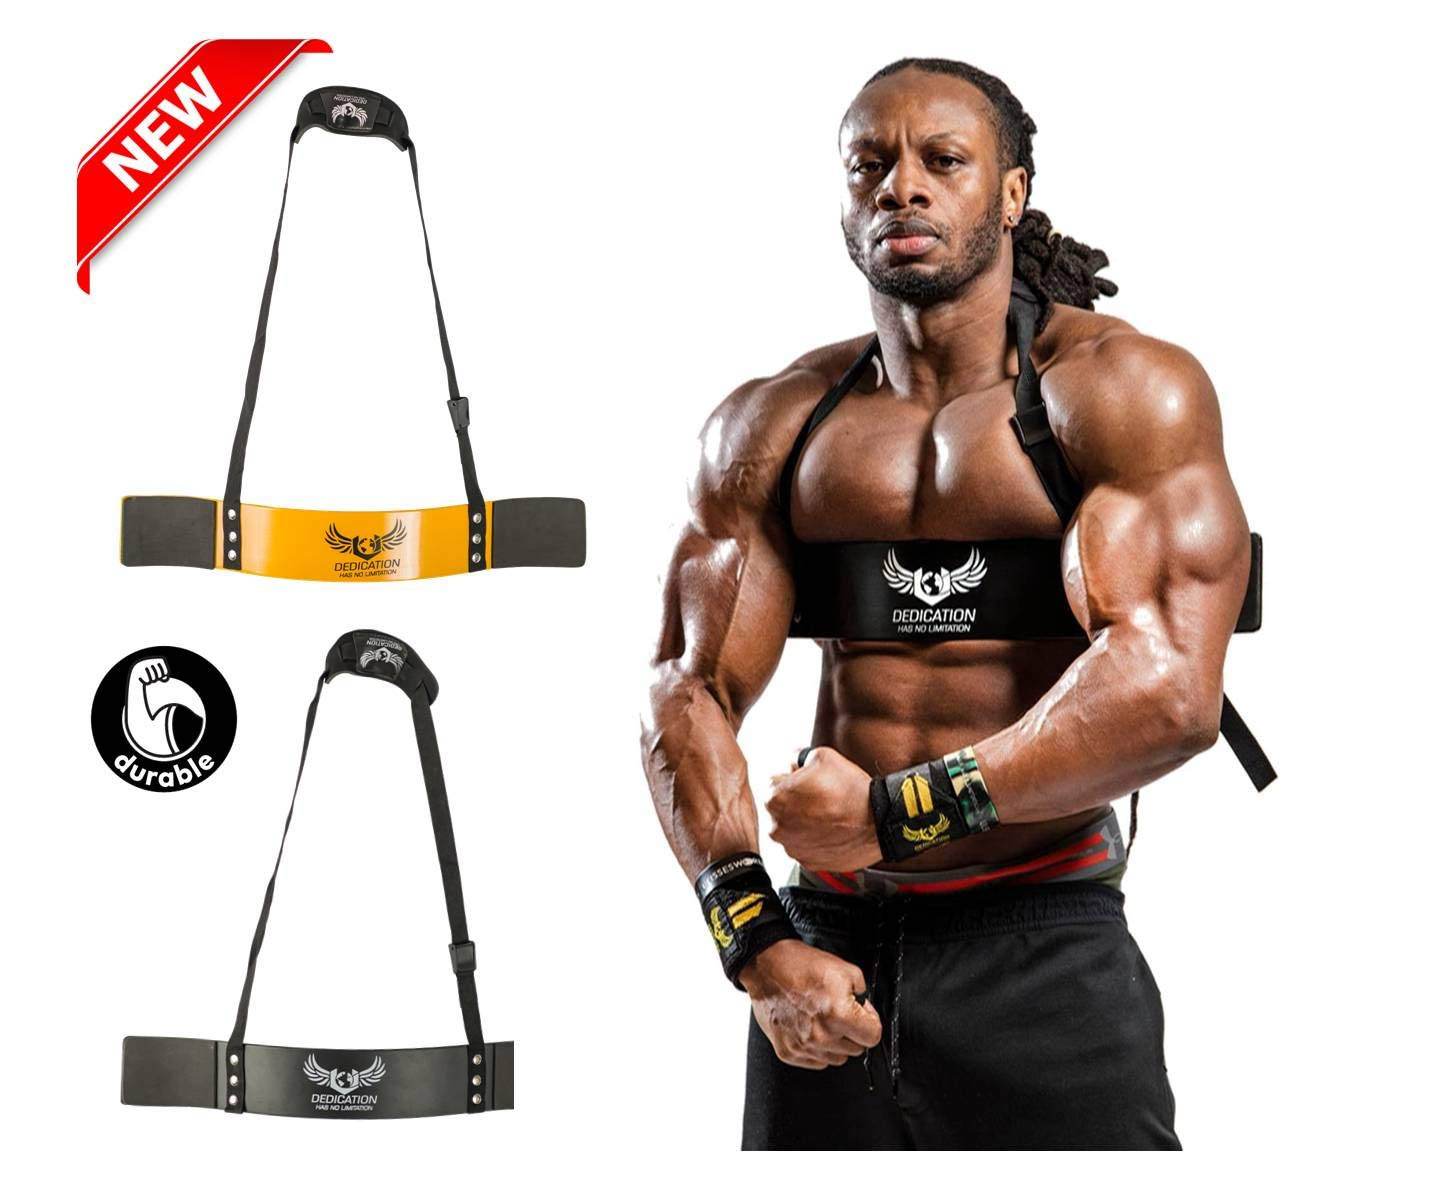 U APPAREL Arm Blaster by Ulisses Jr Premium Bicep Curl Support Isolator Heavy Duty Adjustable Bodybuilding Gym Curling Biceps Bomber Straps Pro Isolation Fitness for Arm Size /& Strength